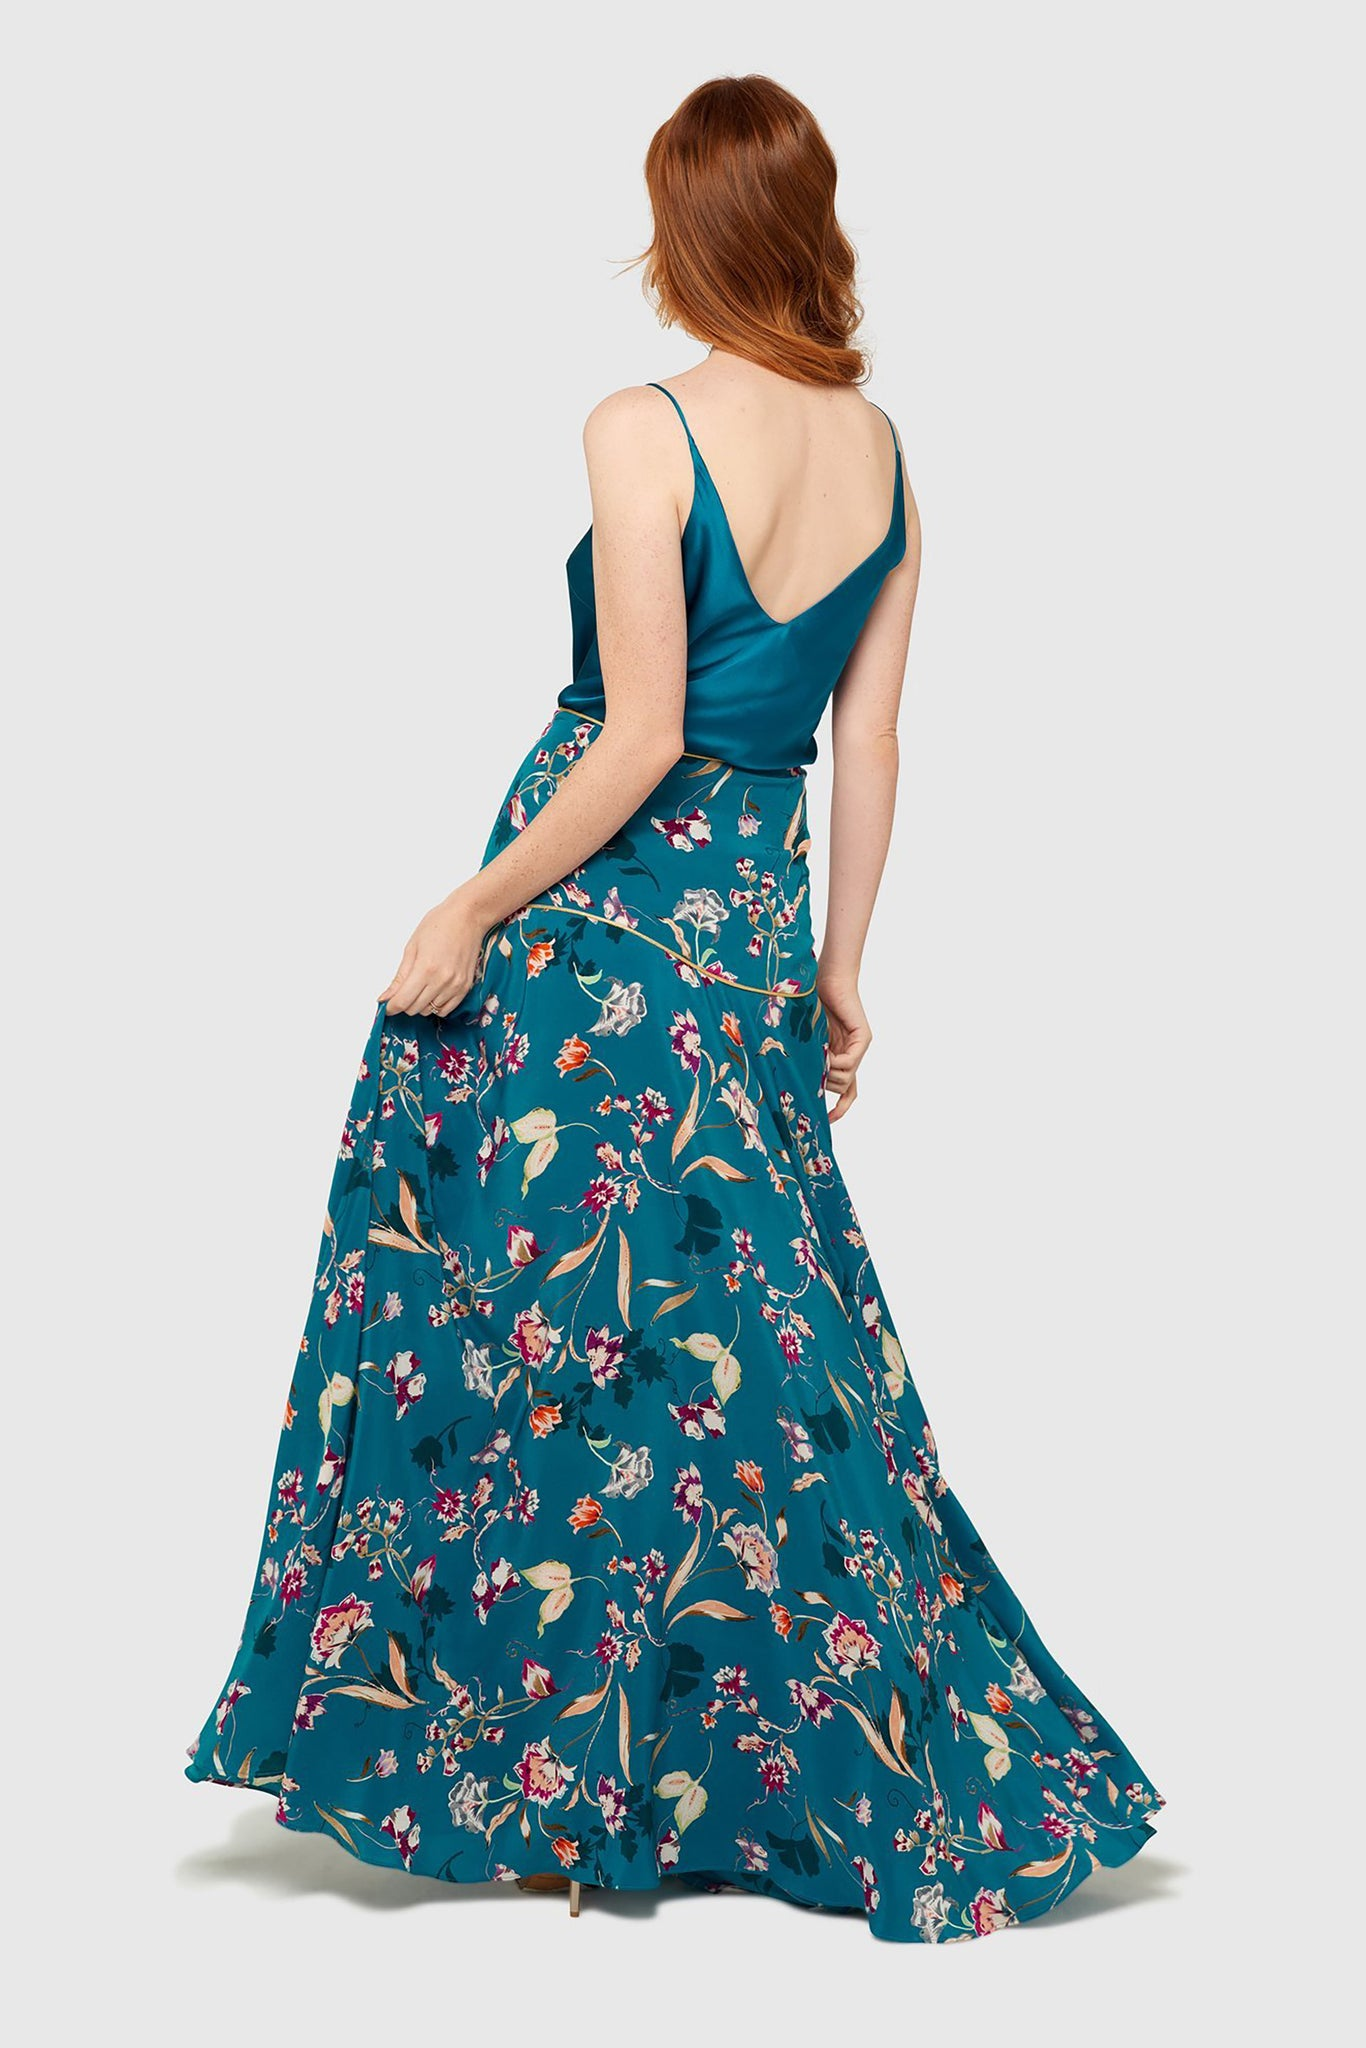 Peacock Bloom Maxi Skirt